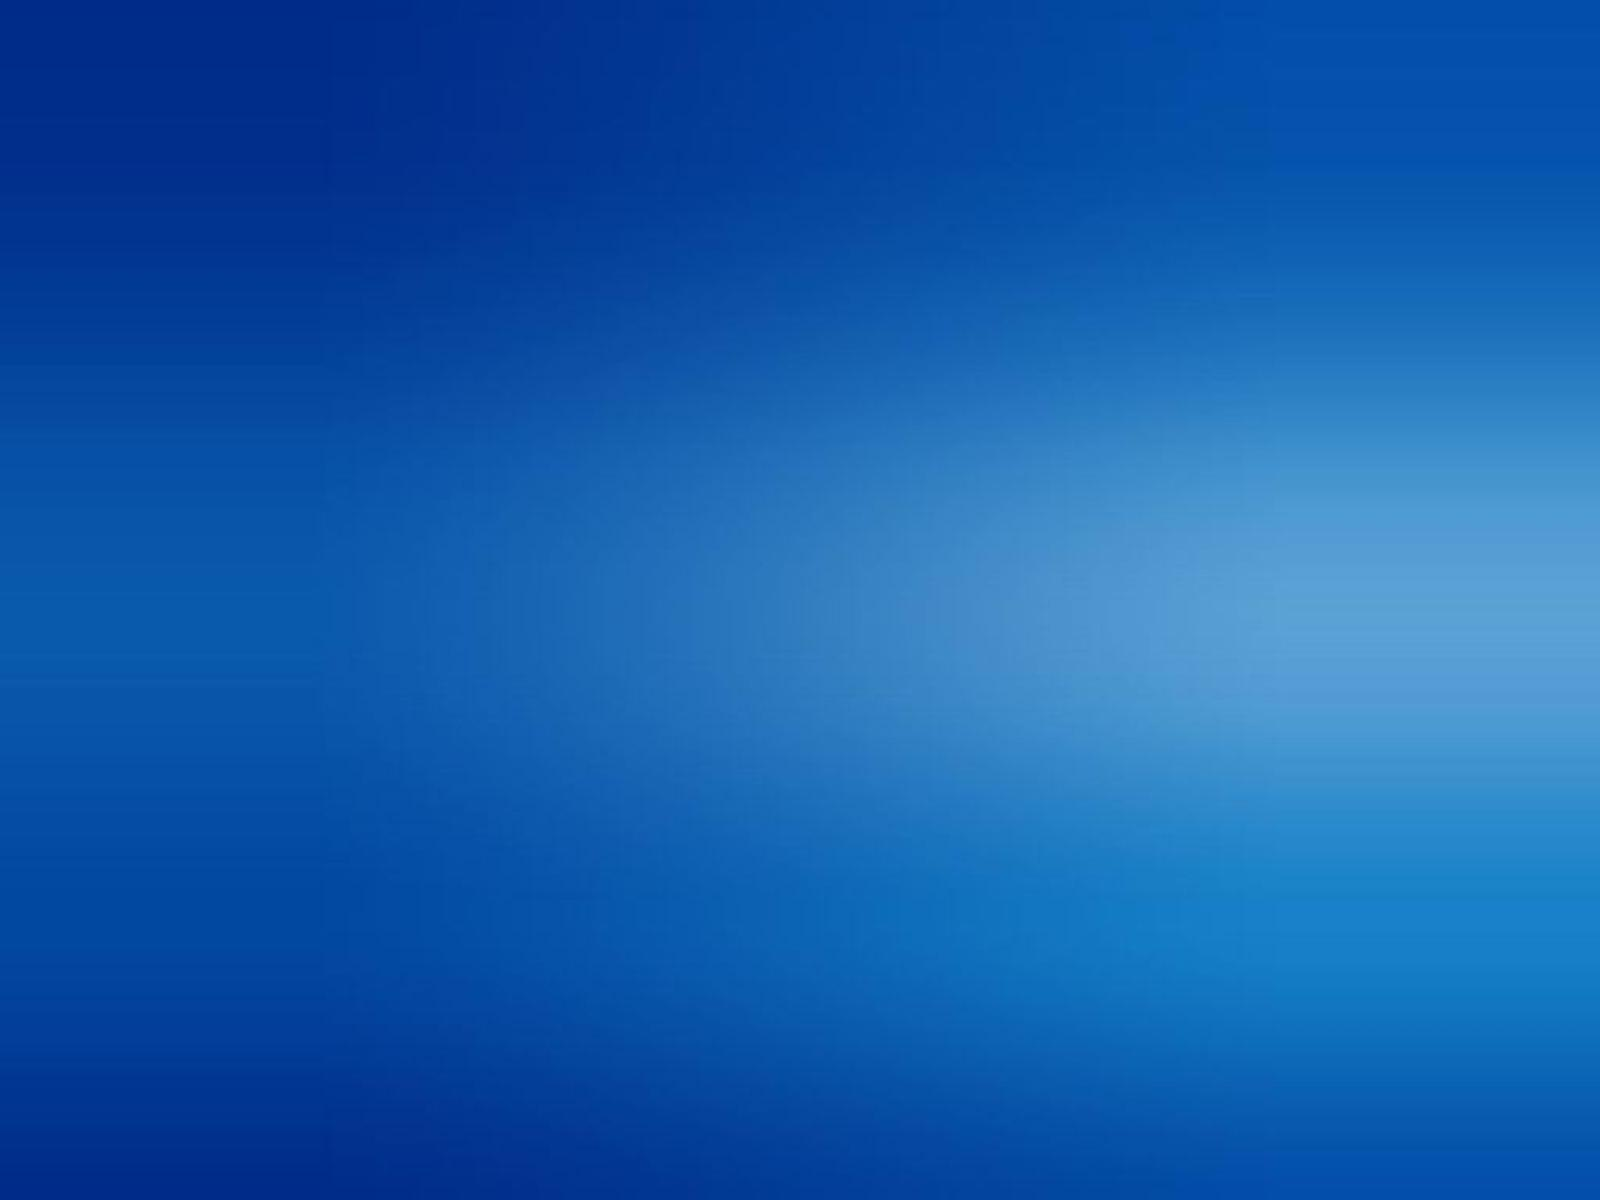 Plain Blue Wallpaper Background HD Download Plain Blue Wallpaper .